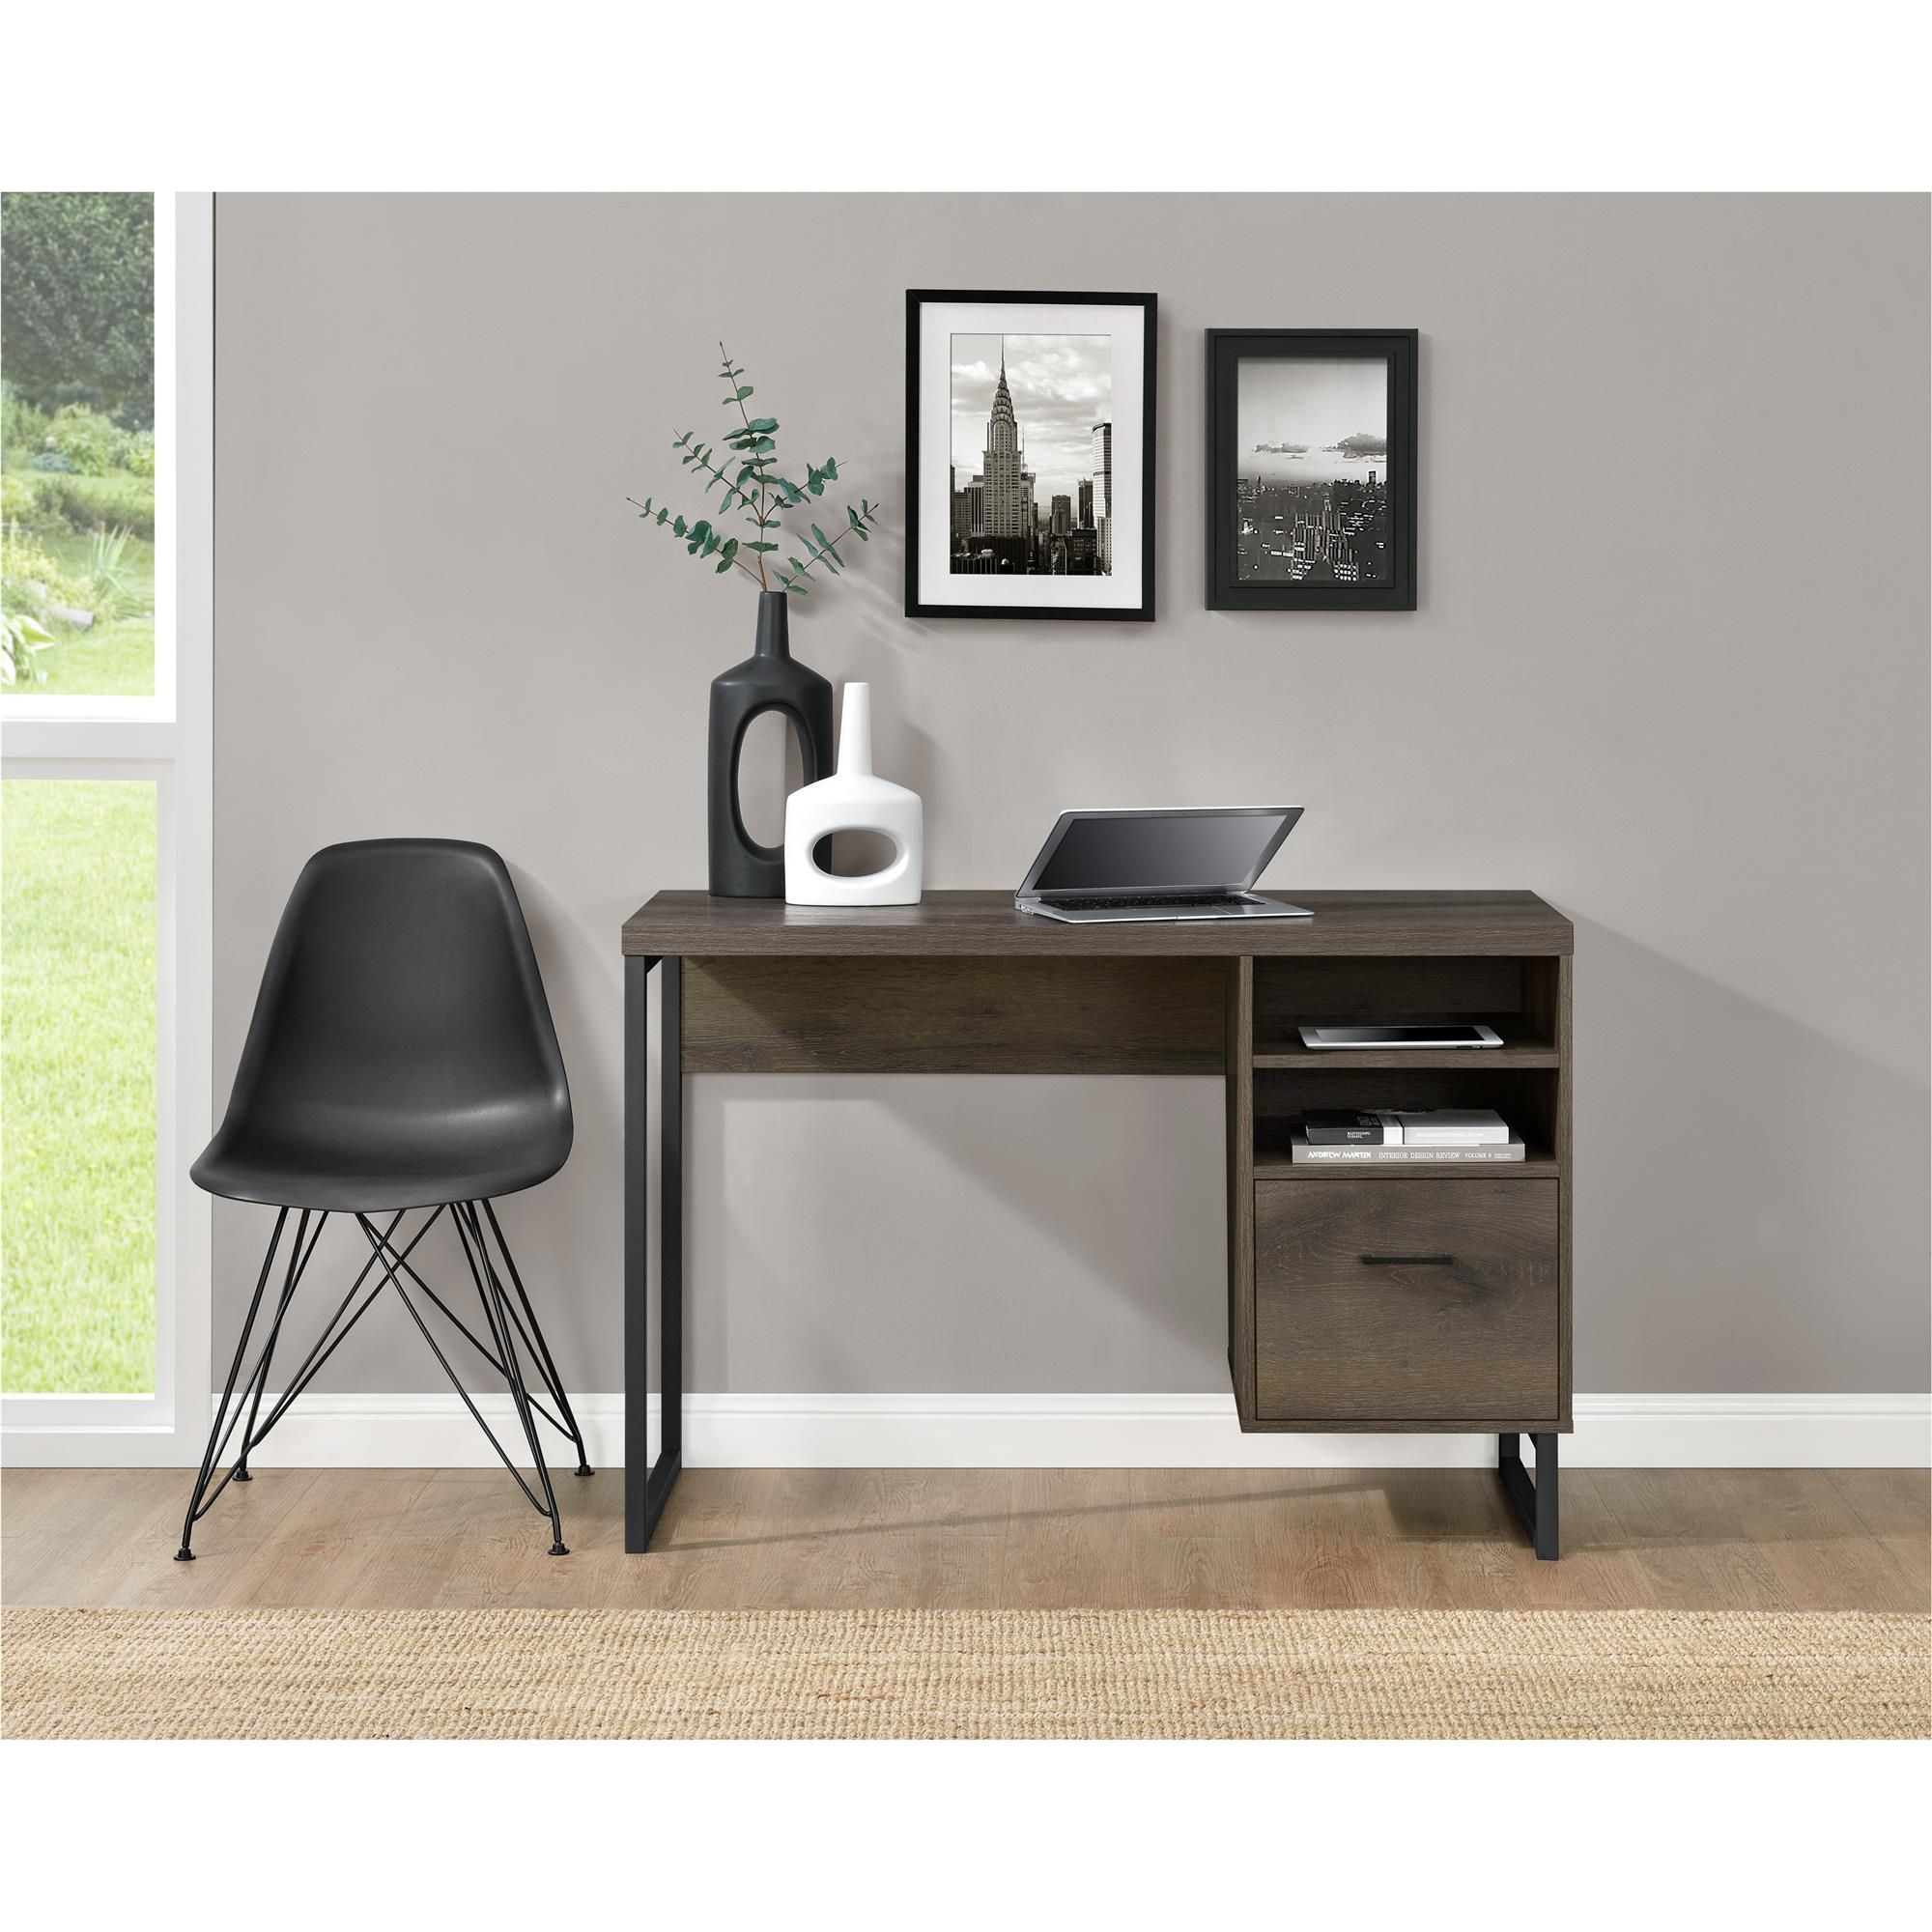 The Ameriwood Home Candon Desk Is The Perfect Size For Any Home Office Dorm Room Or Bedroom With Its Small Footprint But Cheap Office Furniture Furniture Home